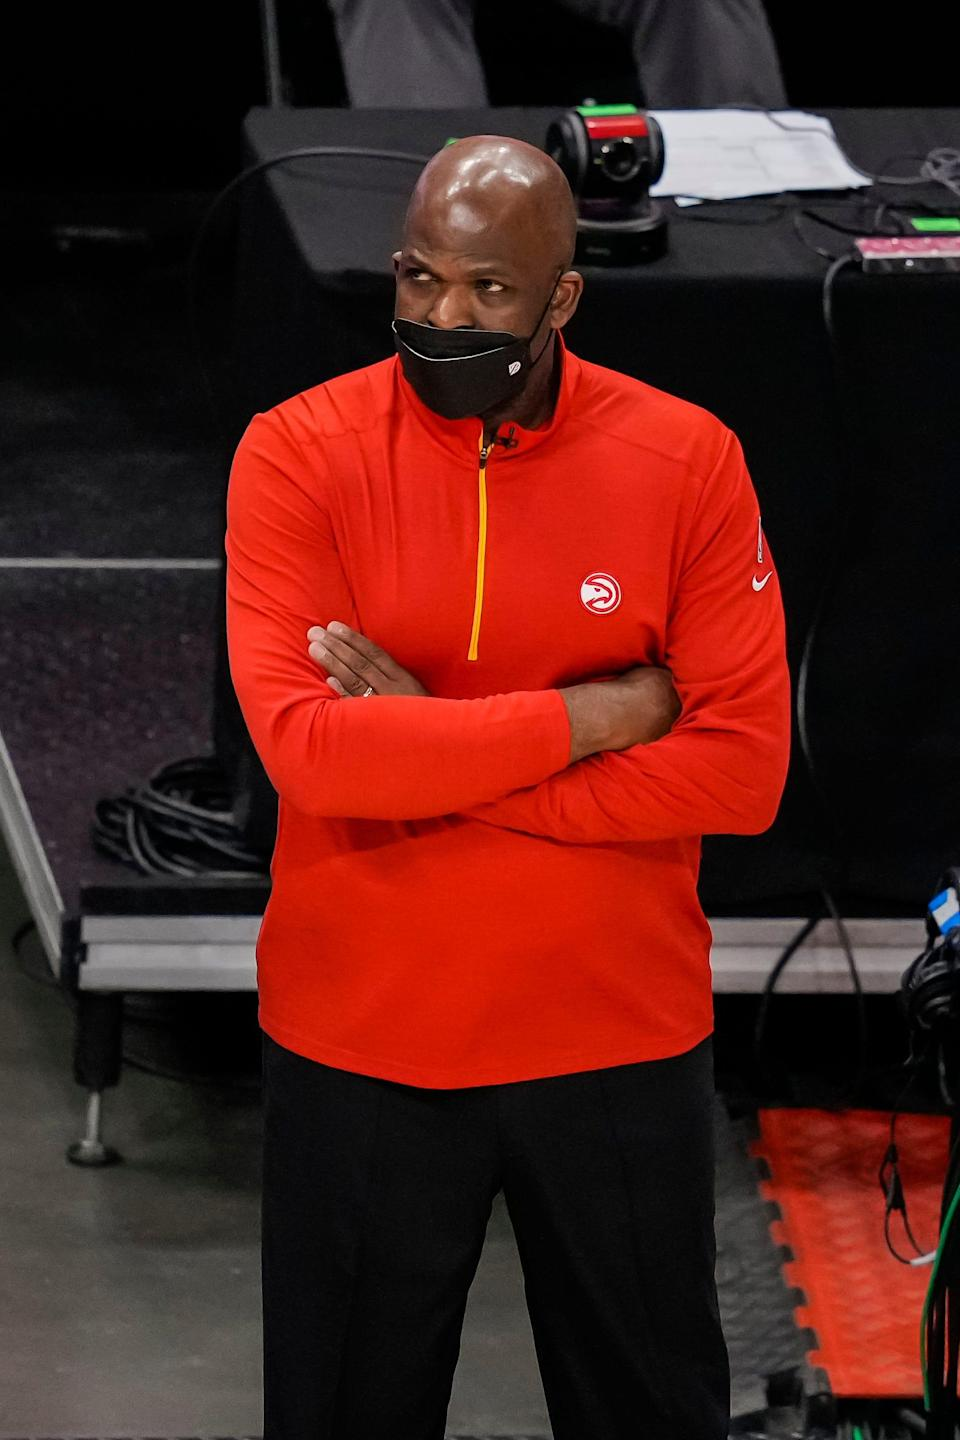 Atlanta Hawks interim head coach Nate McMillan watches the action from the bench against the Washington Wizards during the second half at State Farm Arena.